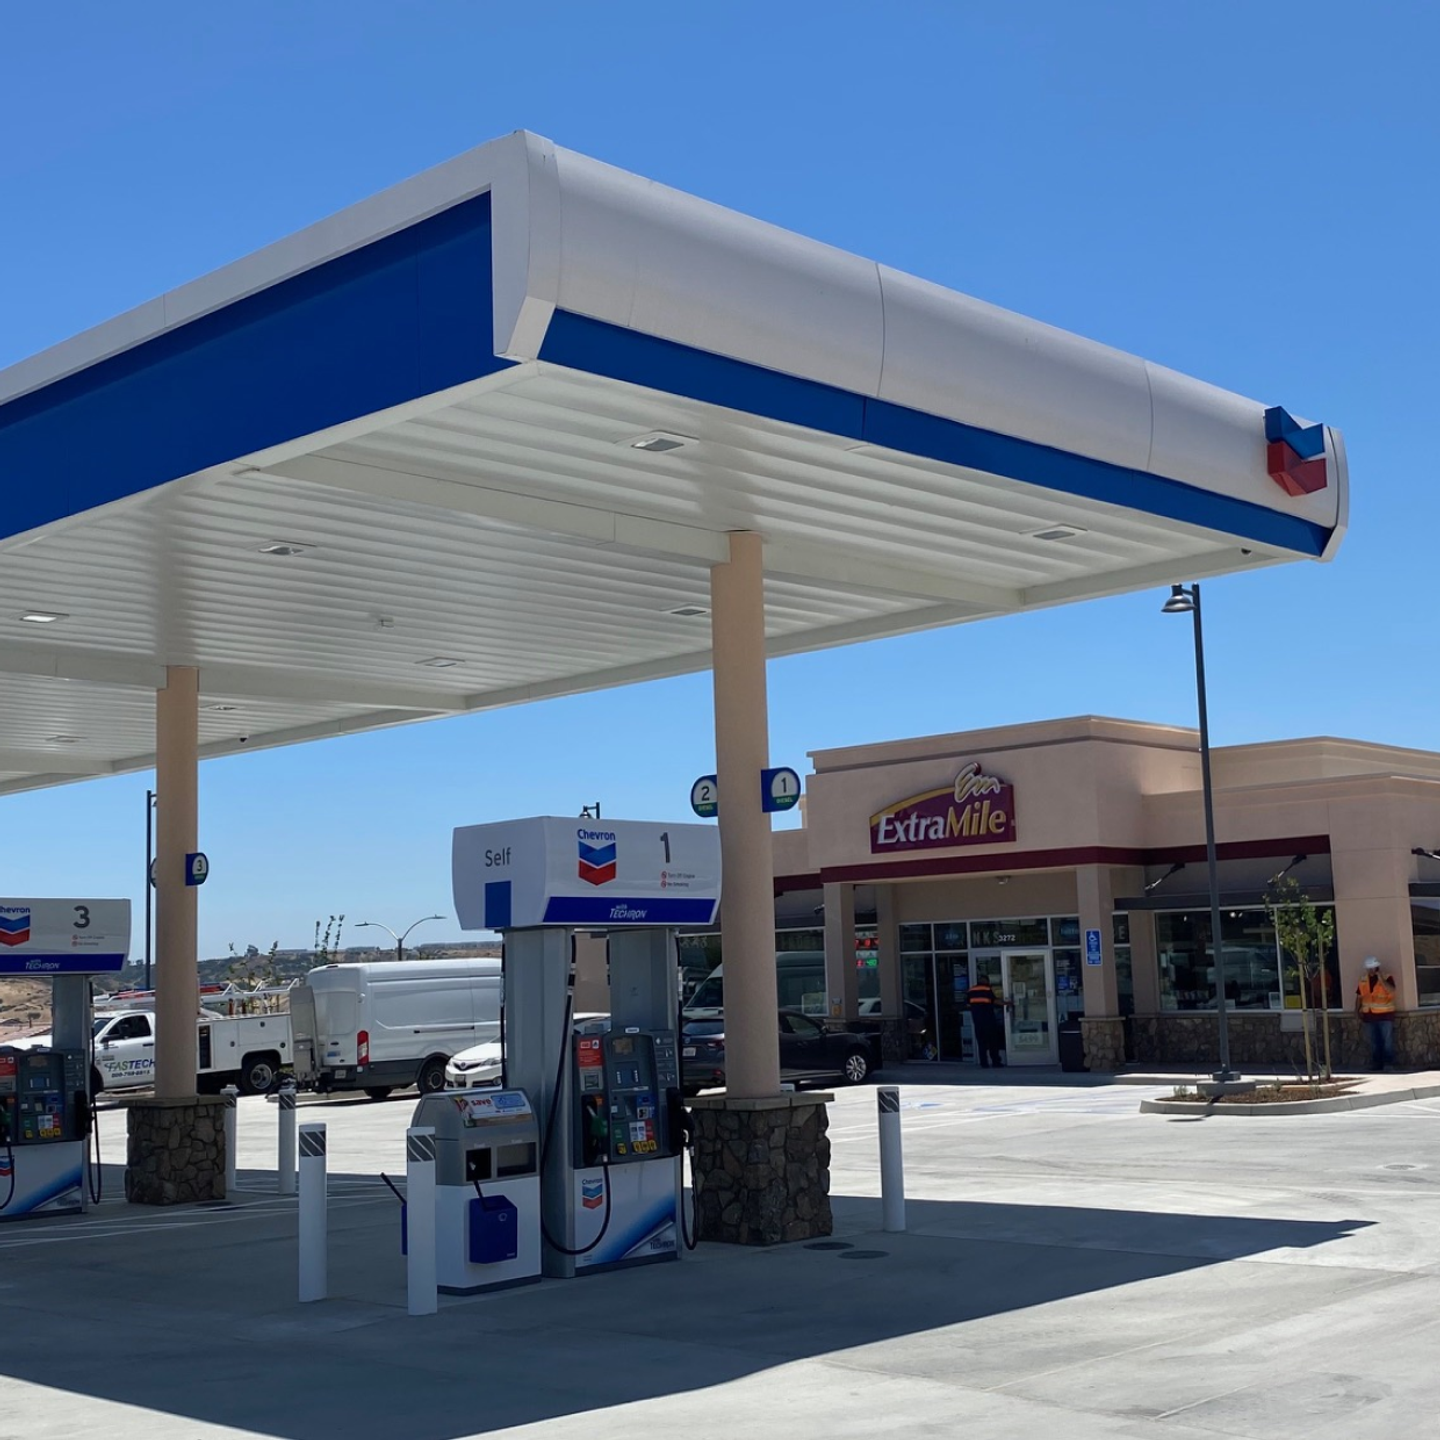 Conventional Fueling Solutions for Gas Stations, Service Stations, and Fleet Fueling Facilities